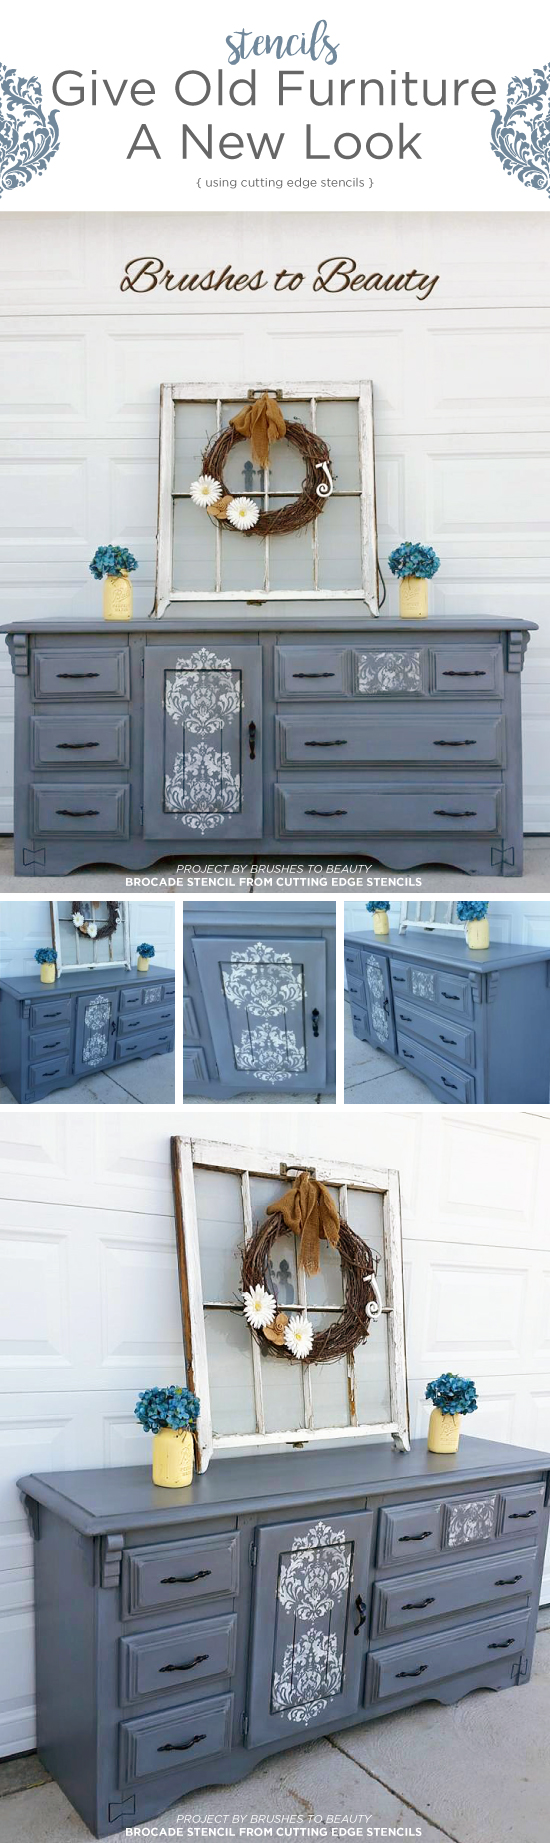 Cutting Edge Stencils Shares A Diy Painted And Stenciled Dresser Project Using The Brocade No